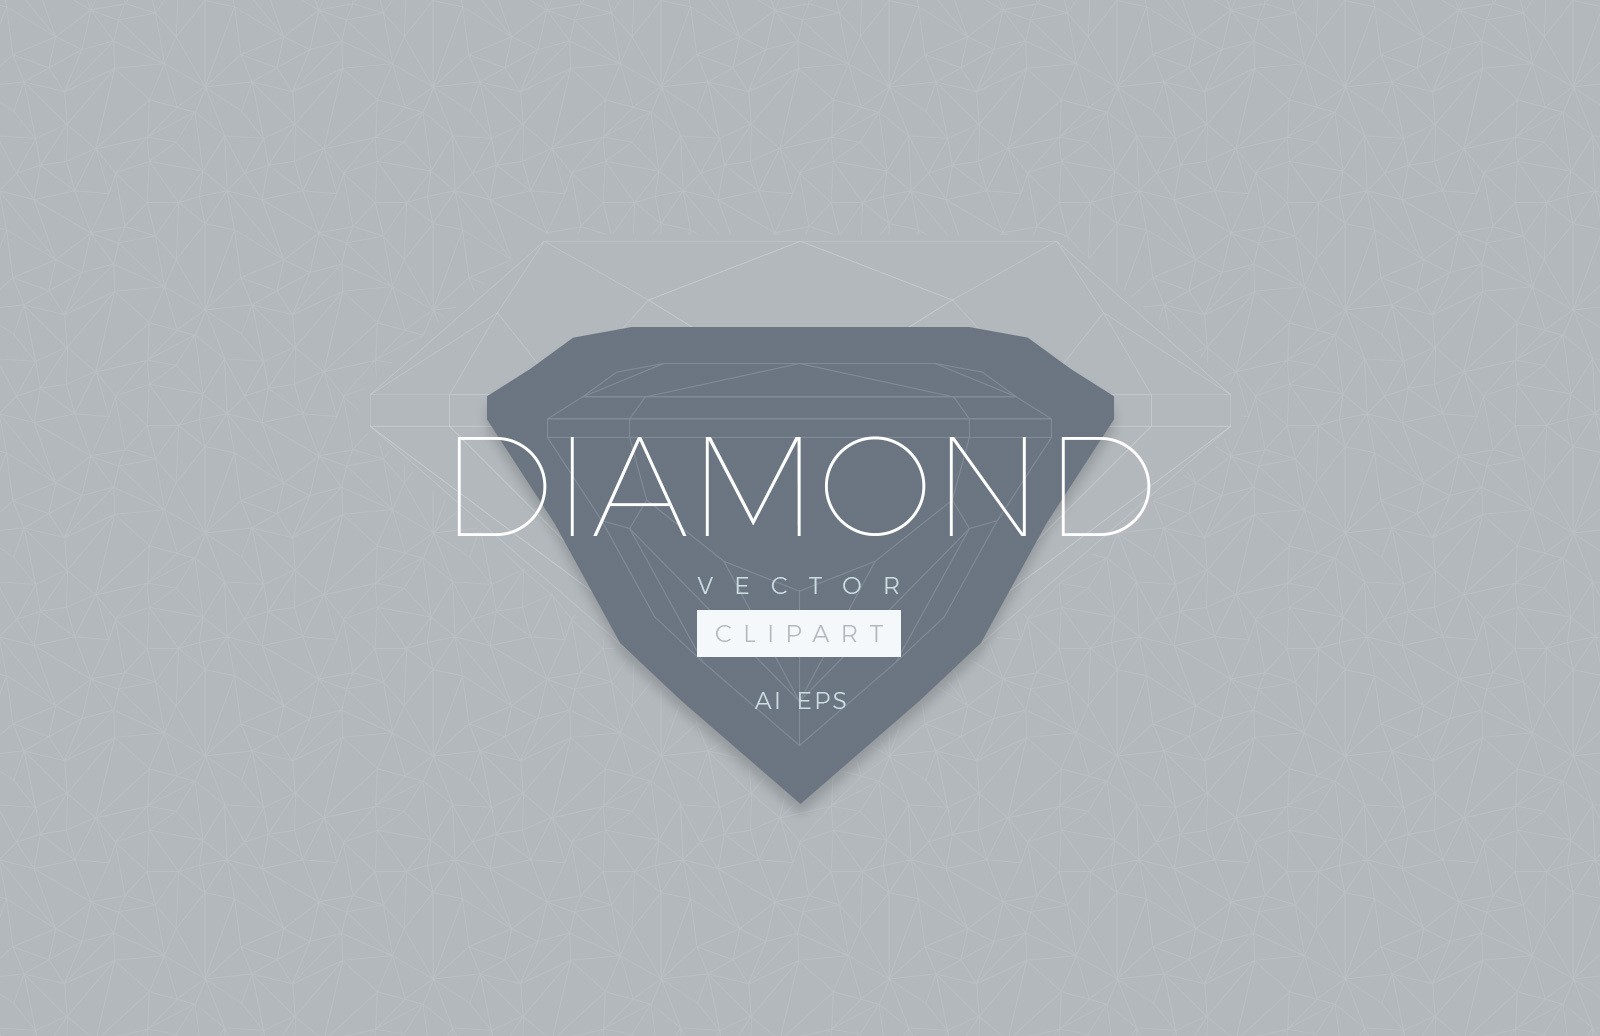 Diamond Vector Clipart